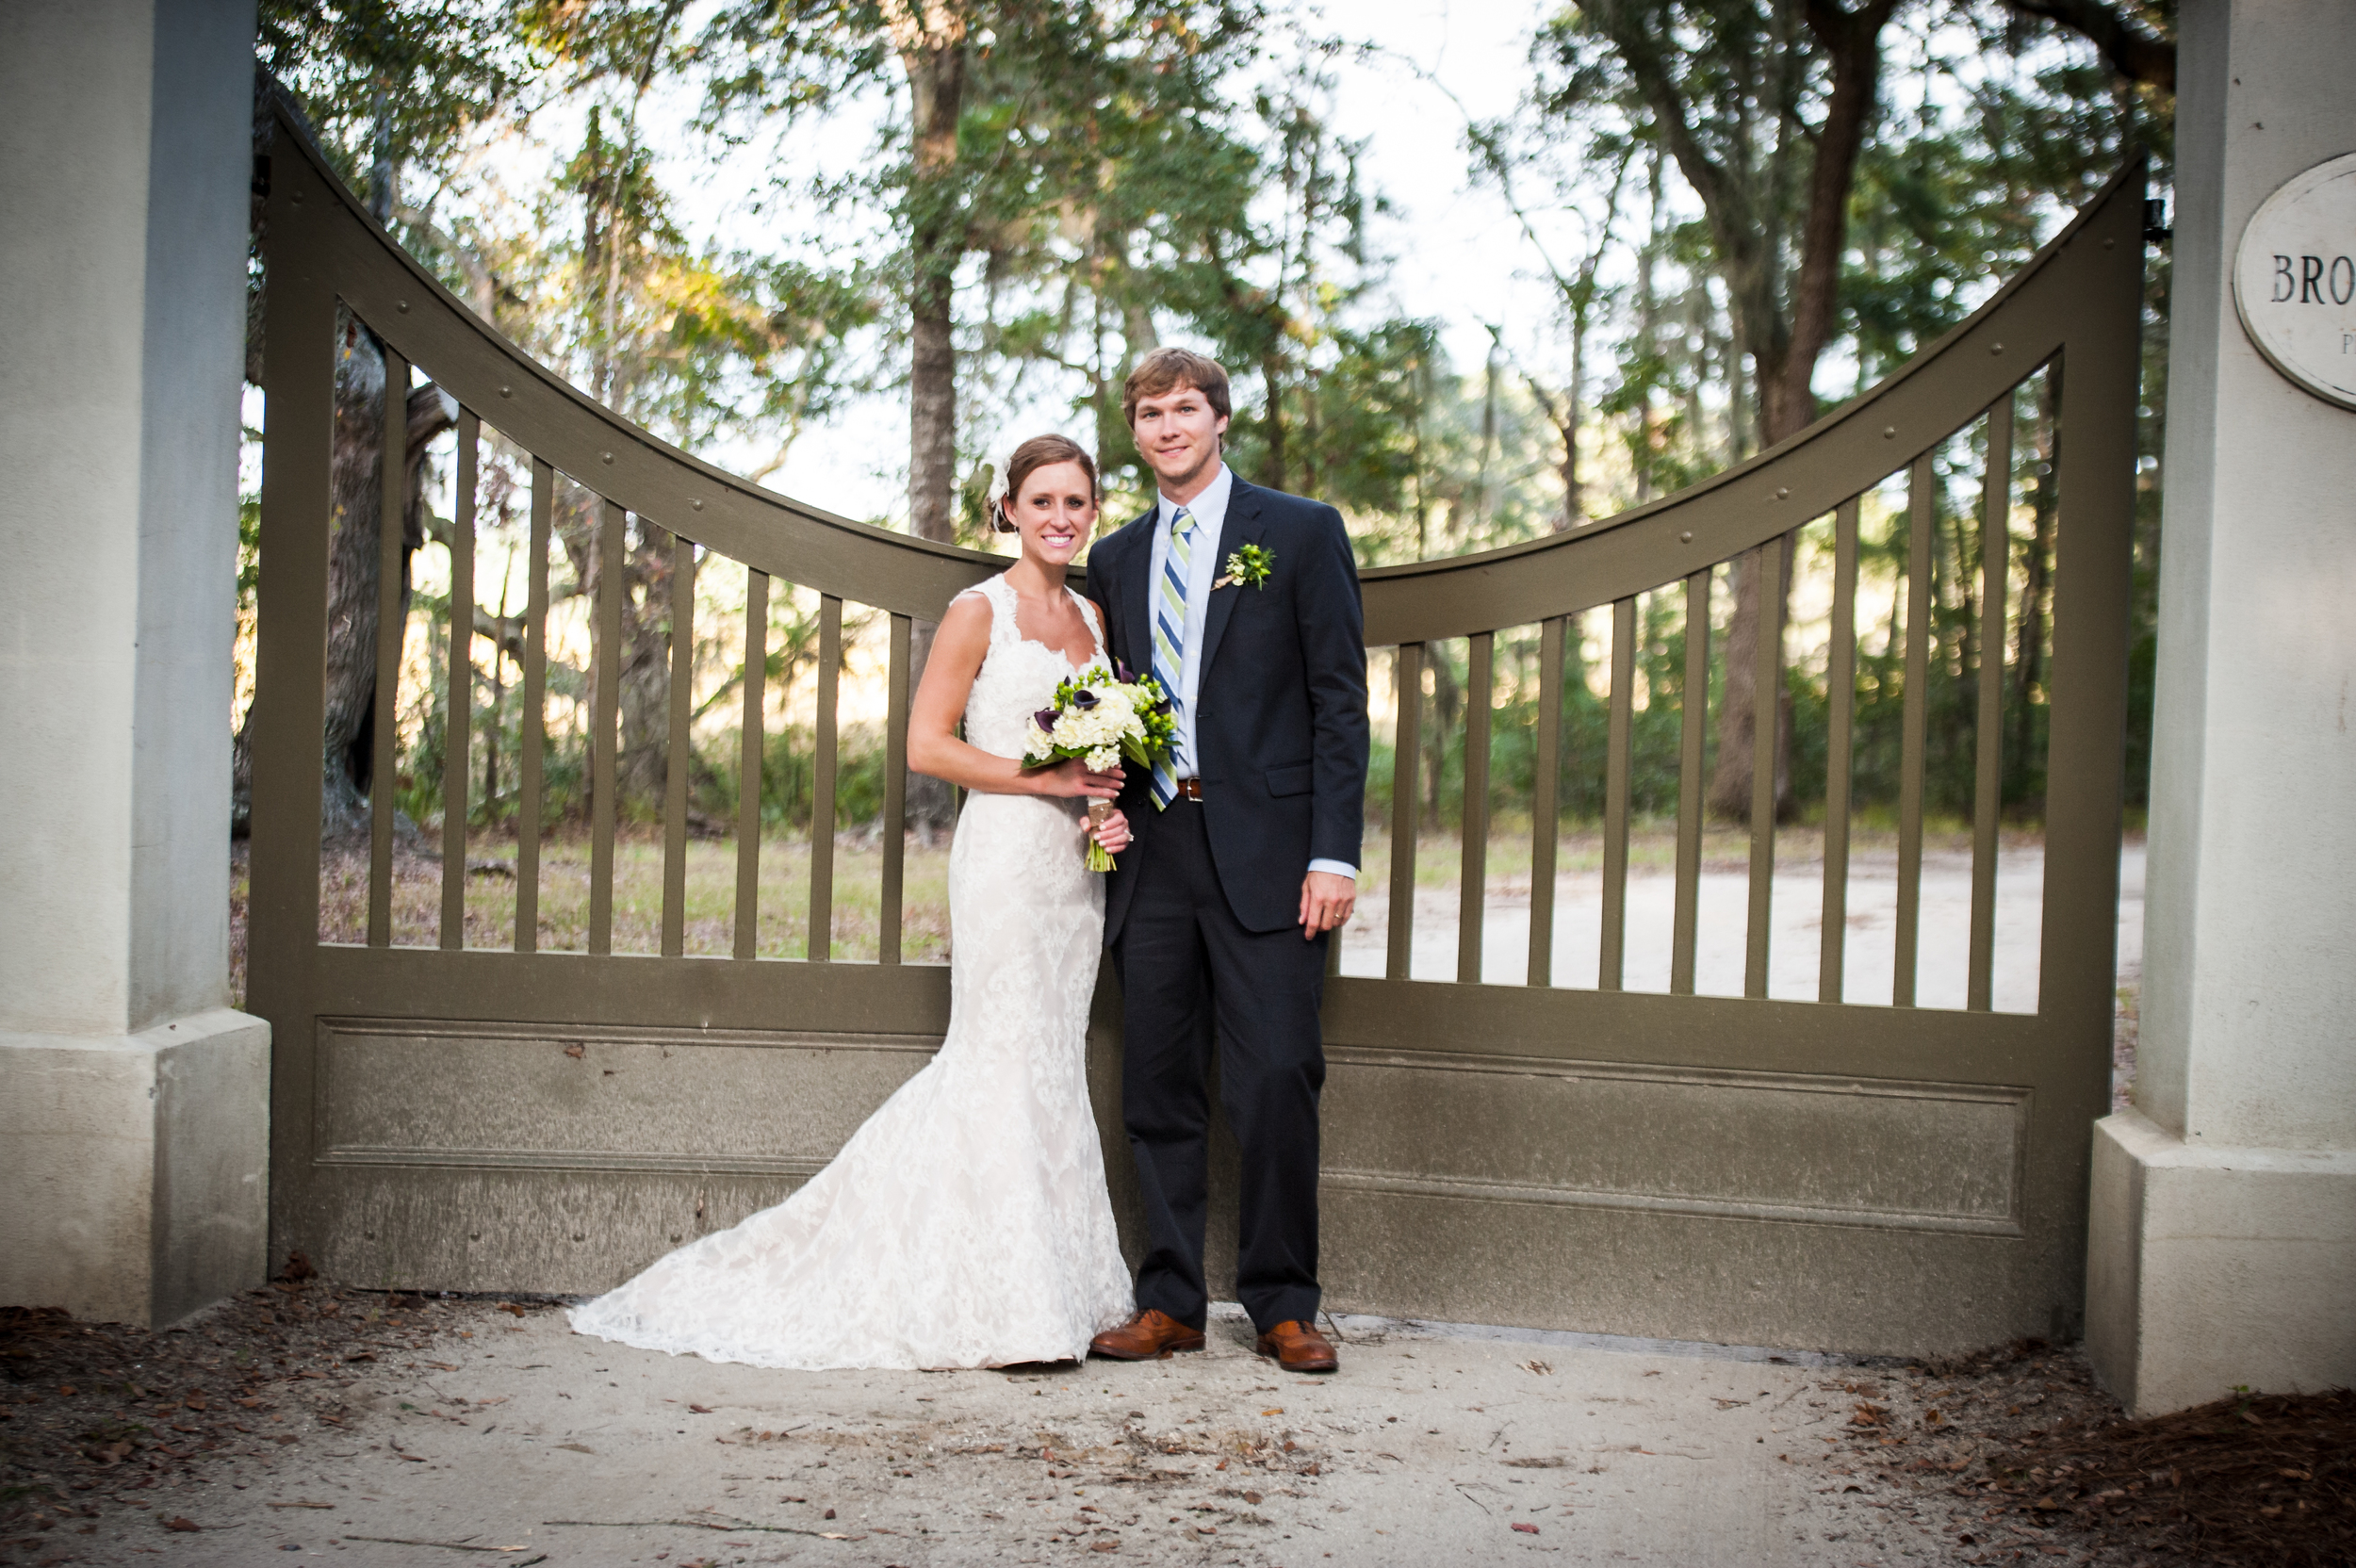 Wedding in South Carolina